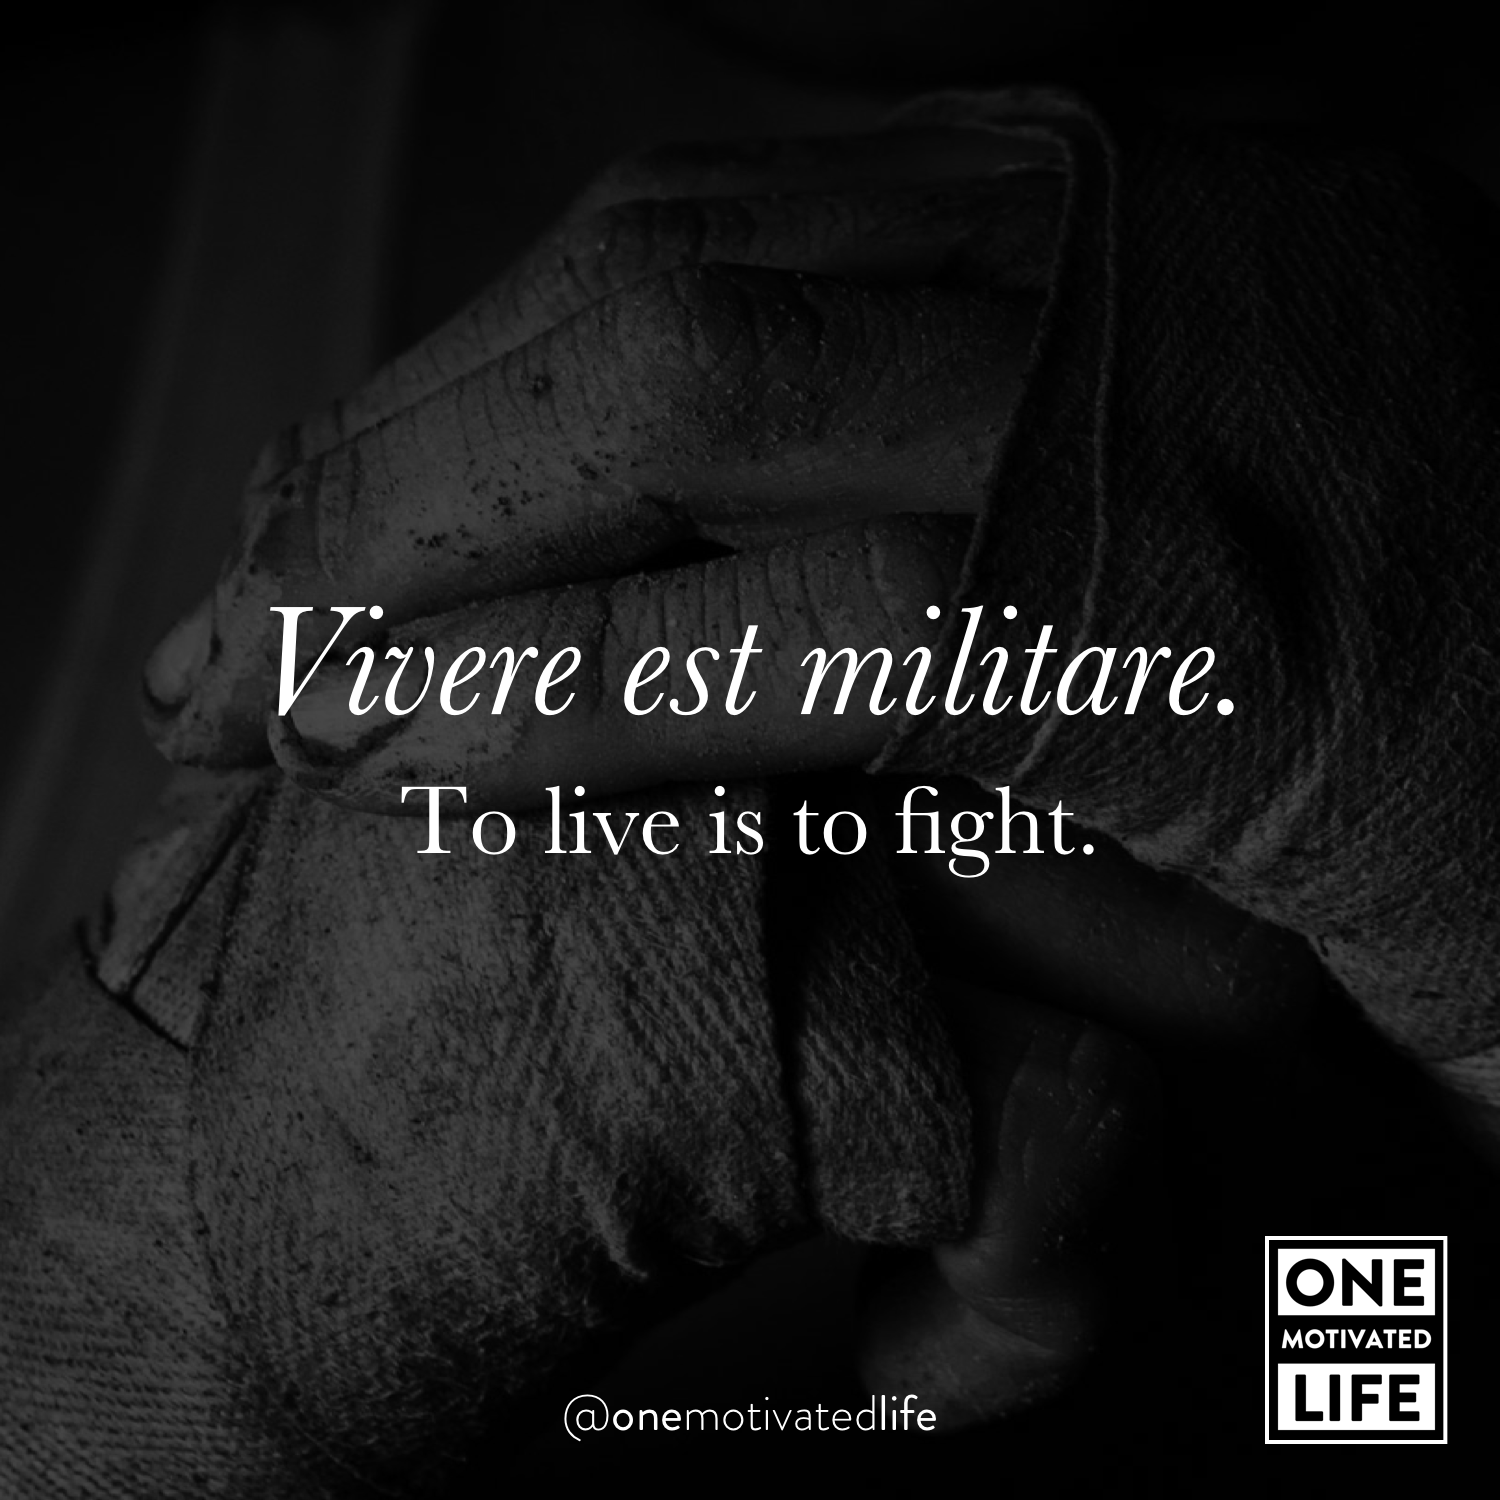 [Image] Vivere est militare. To live is to fight.